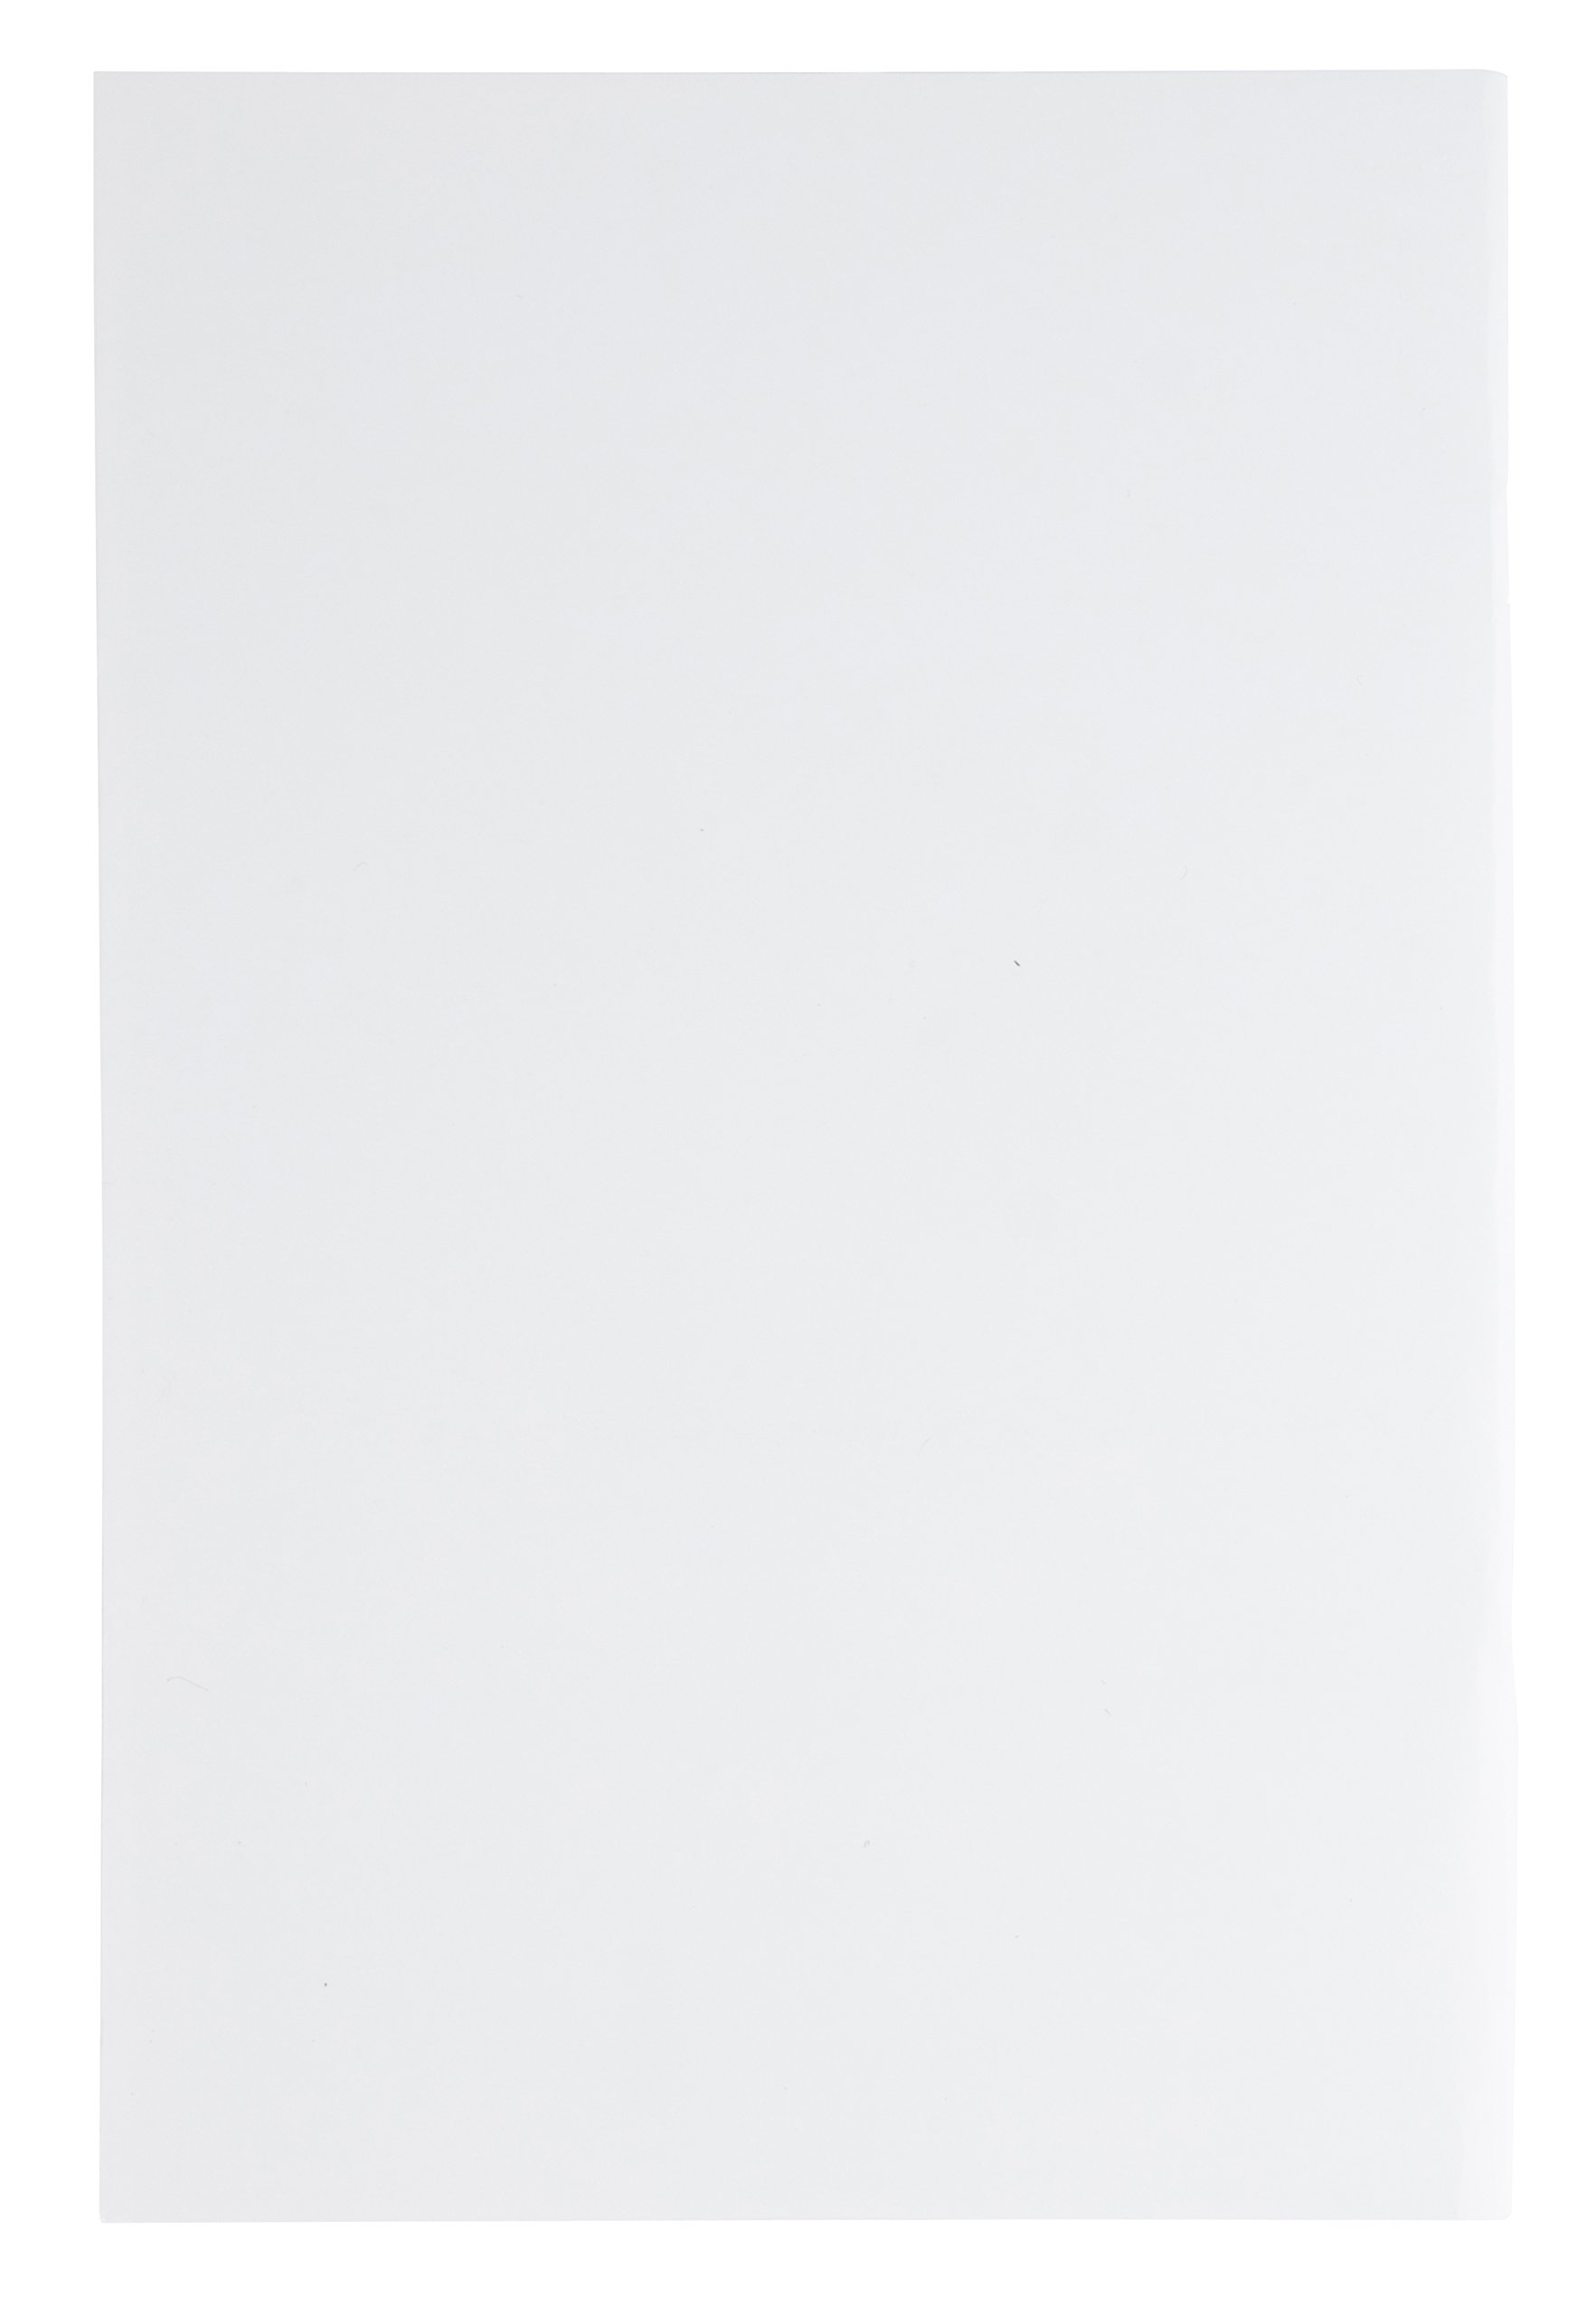 Blank Notebook - 24-Pack Unlined Books, Unruled Plain Travel Journals for Students, School, Children's Writing Books, Creative Class Project, White, 5.5 x 8.5 Inches, Half Letter Sized, 24 Sheets Each by Paper Junkie (Image #3)